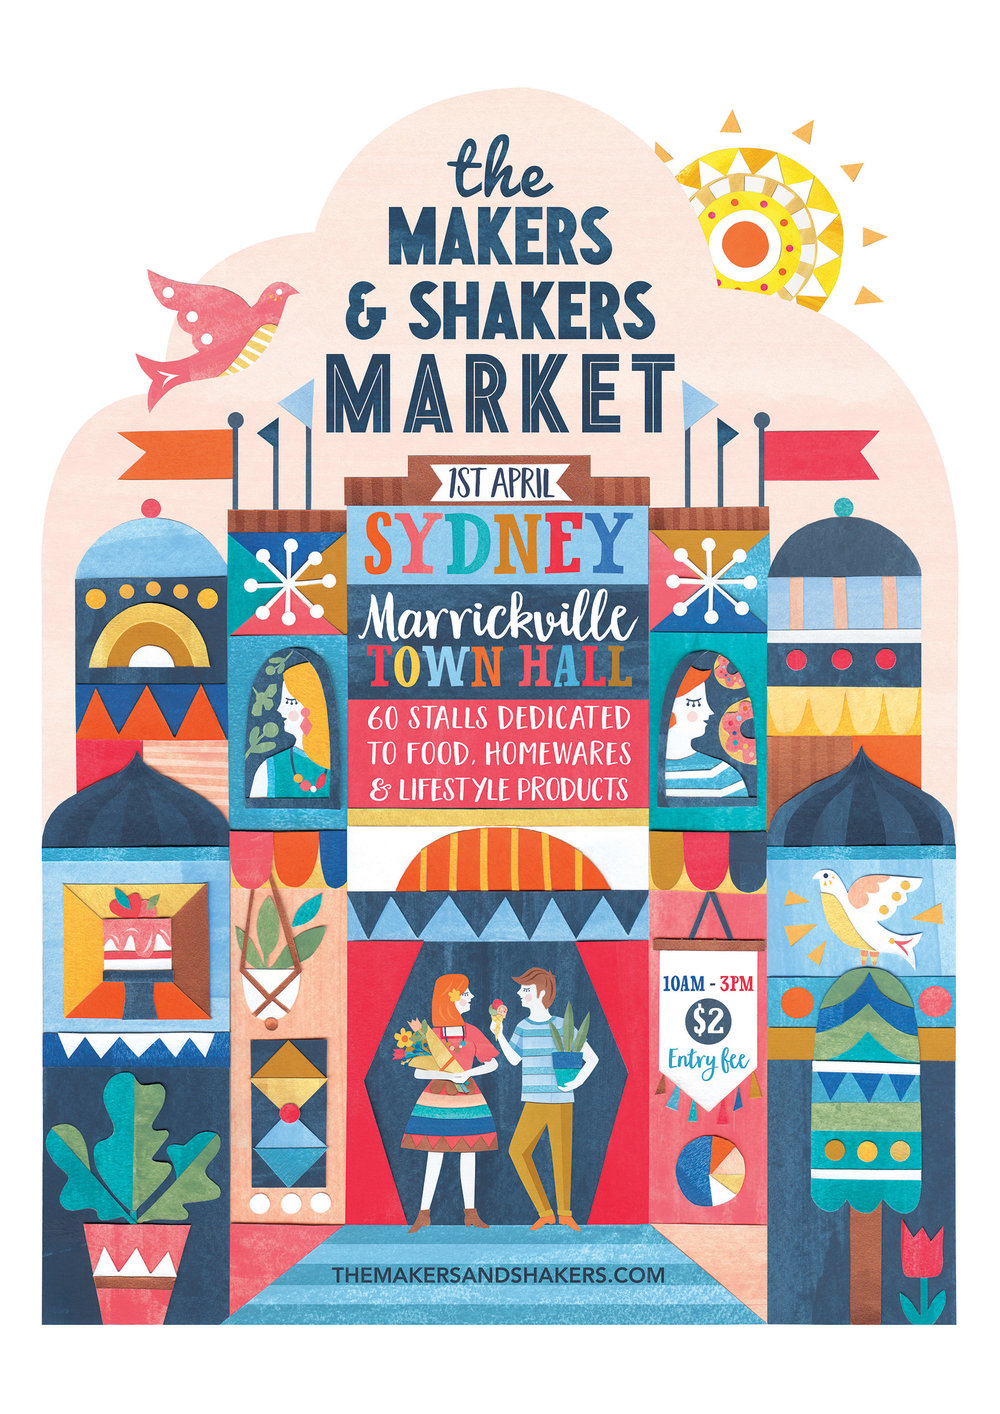 The Makers & Shakers Market Sydney April 2017